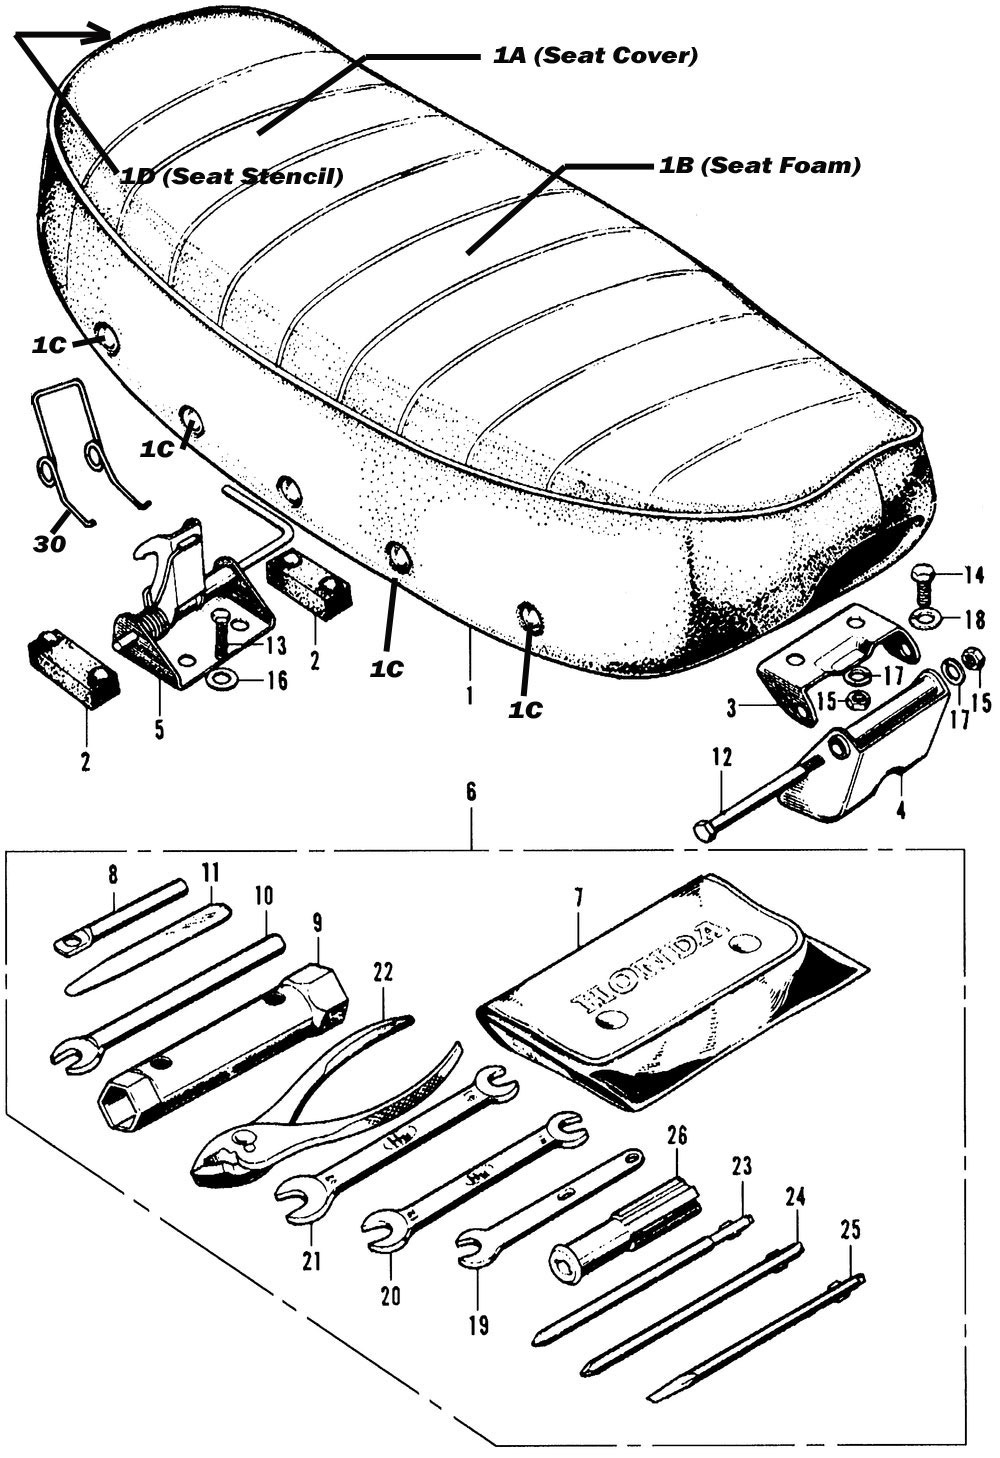 Seat, and Tools